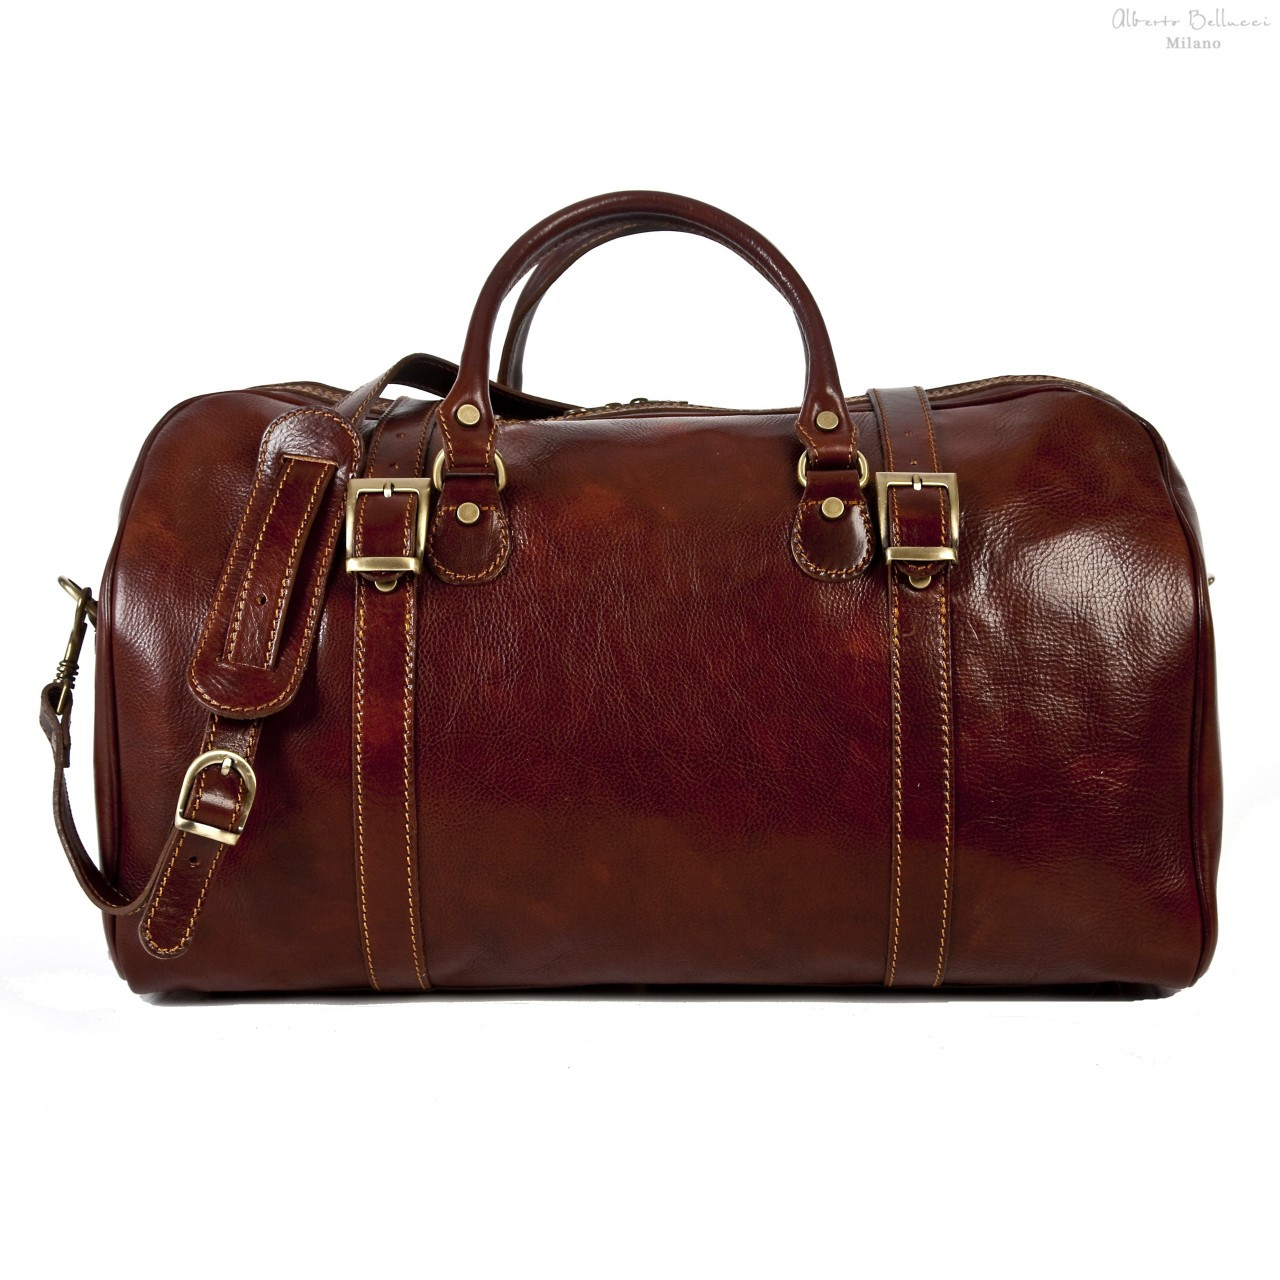 f8c147c91e50e Alberto Bellucci Unisex Italian Leather Torino Carry-on Tourist Duffel ...